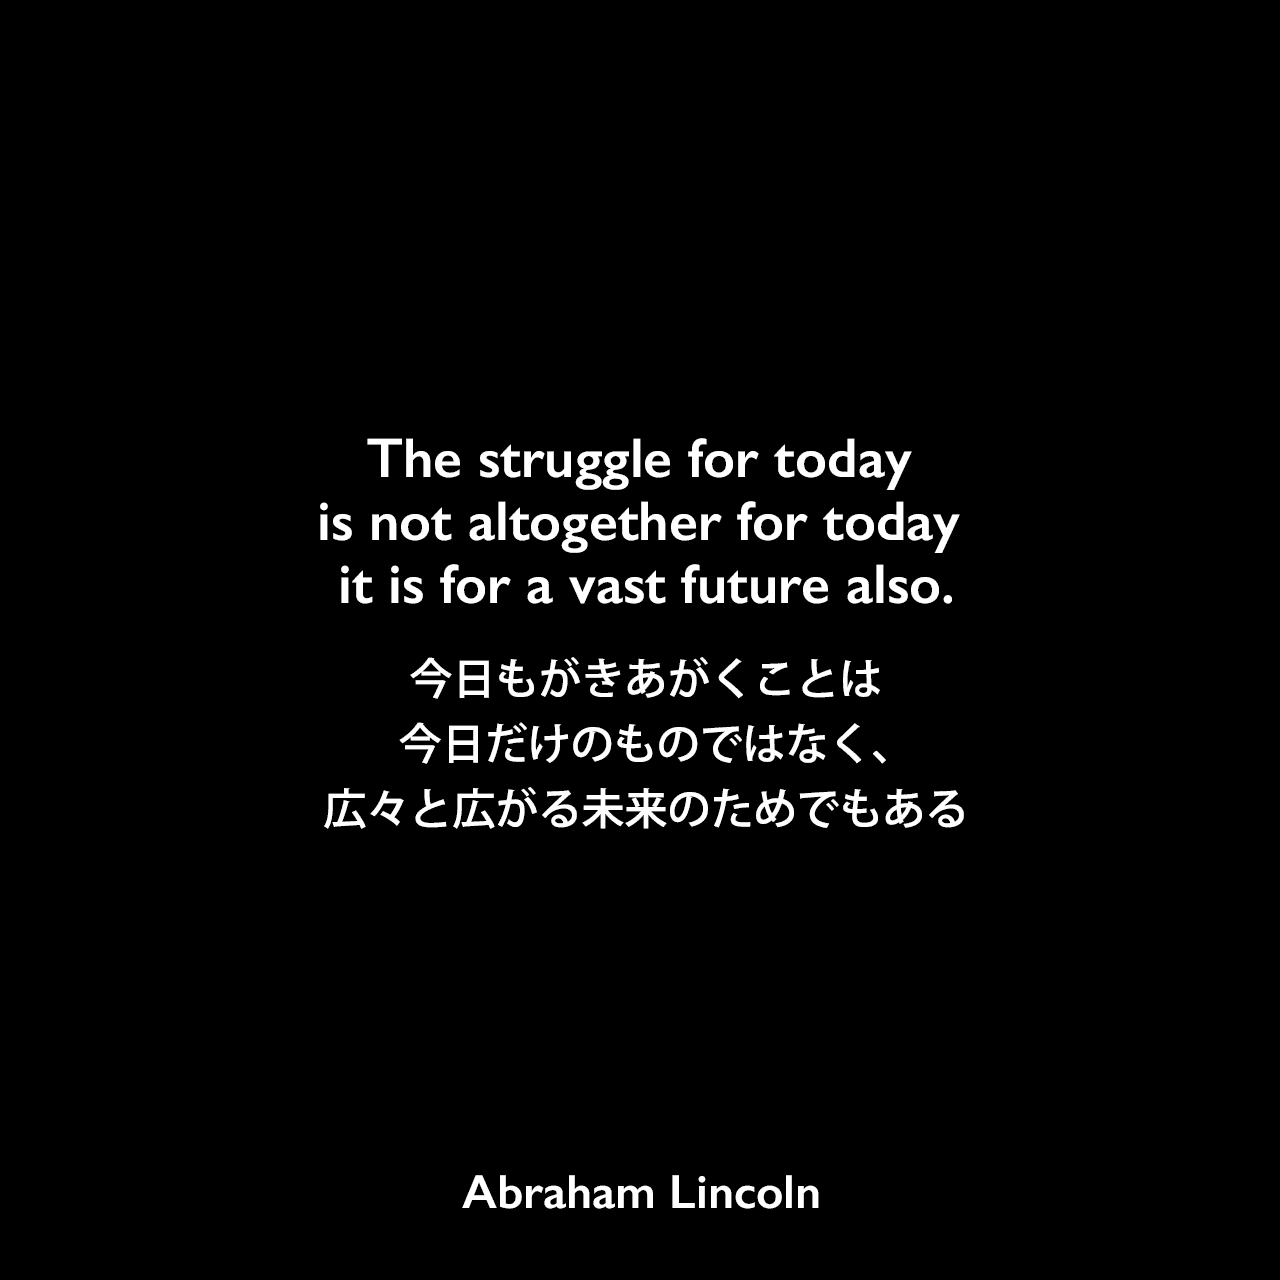 The struggle for today is not altogether for today — it is for a vast future also.今日もがきあがくことは今日だけのものではなく、広々と広がる未来のためでもある